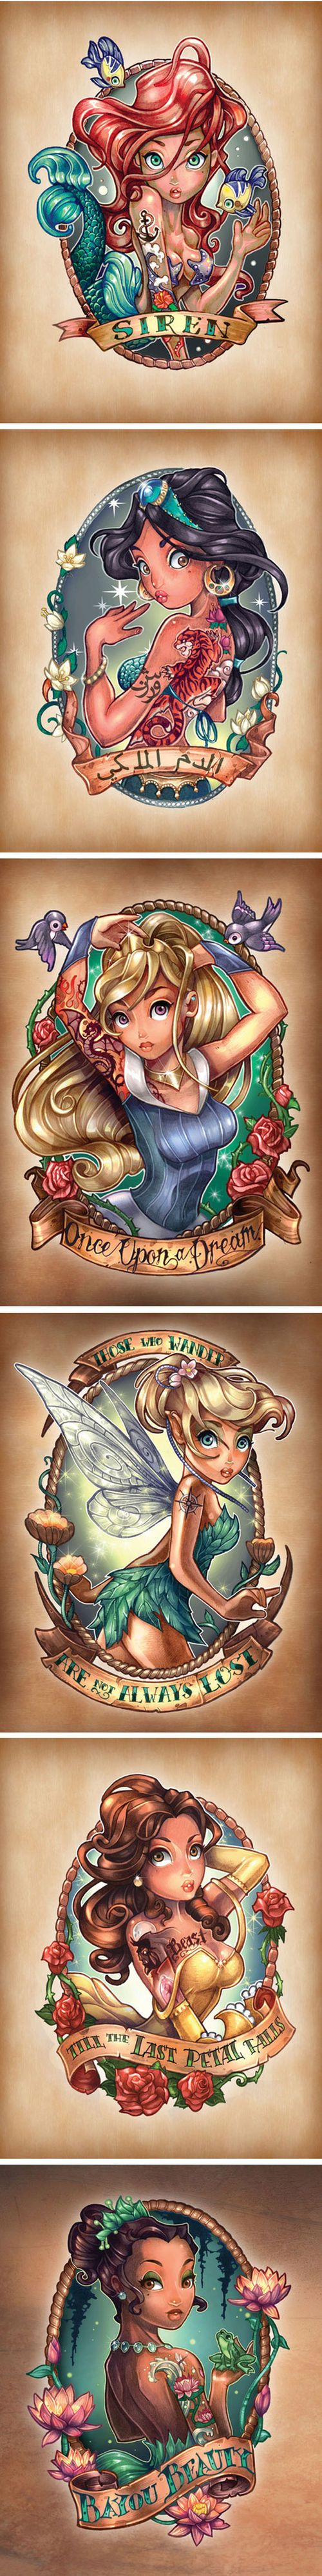 Disney Princess Tattoo Style Art on imgfave